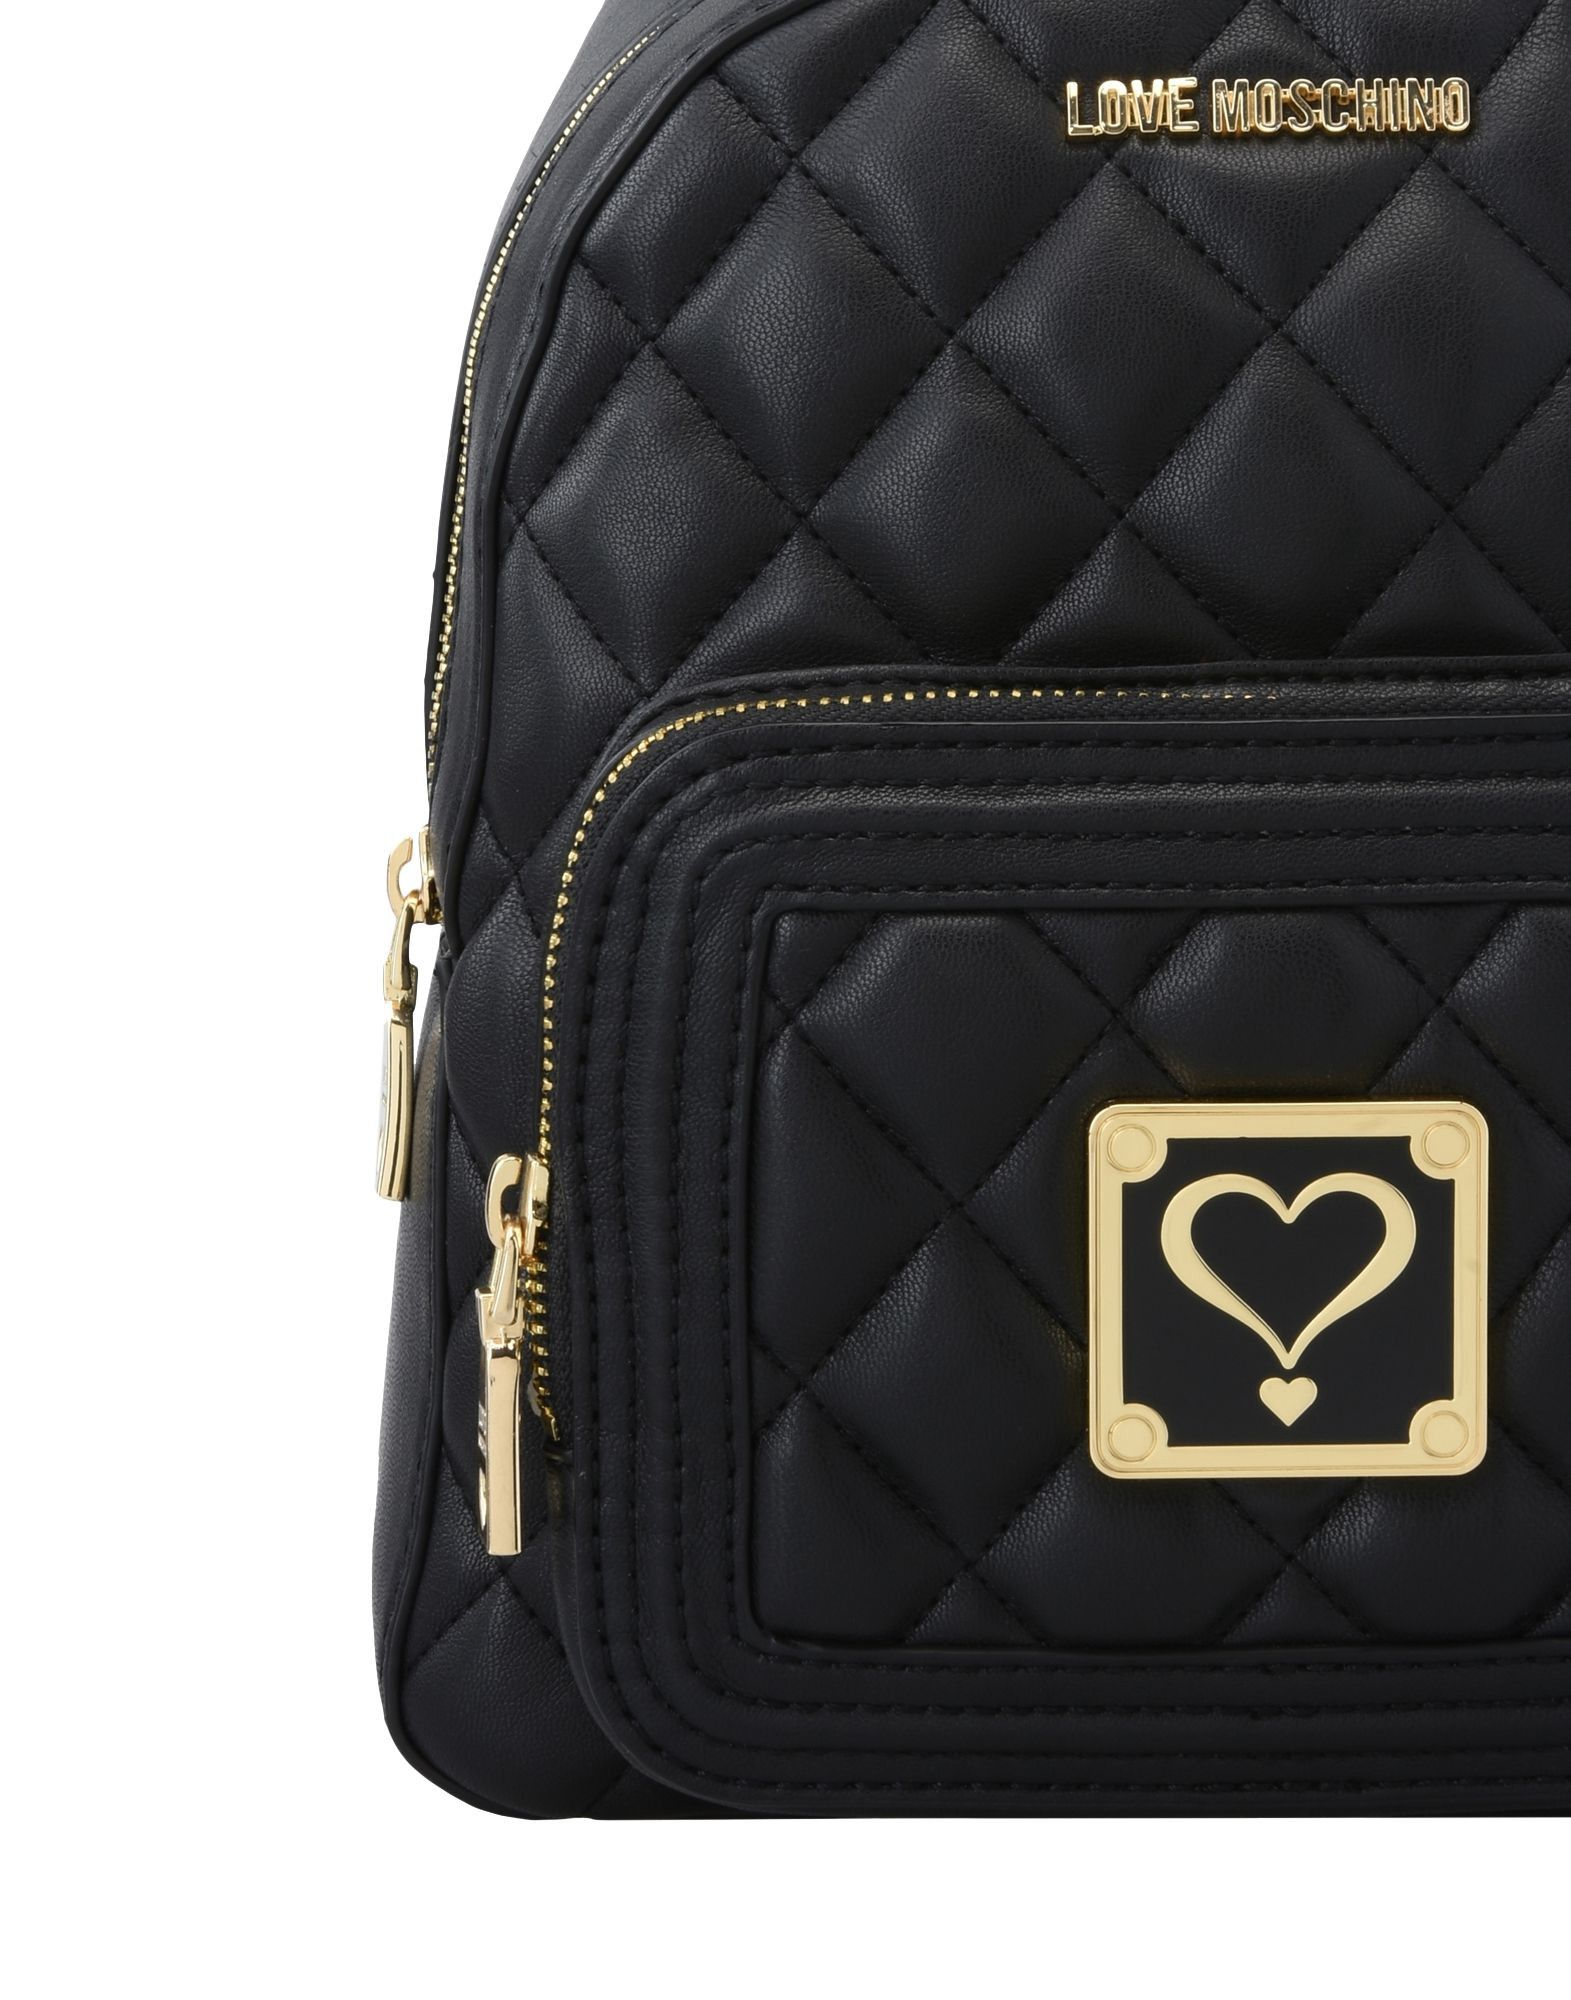 3d2a70f843b MOSCHINO Love Moschino Backpack. #moschino #bags #polyester #backpacks #